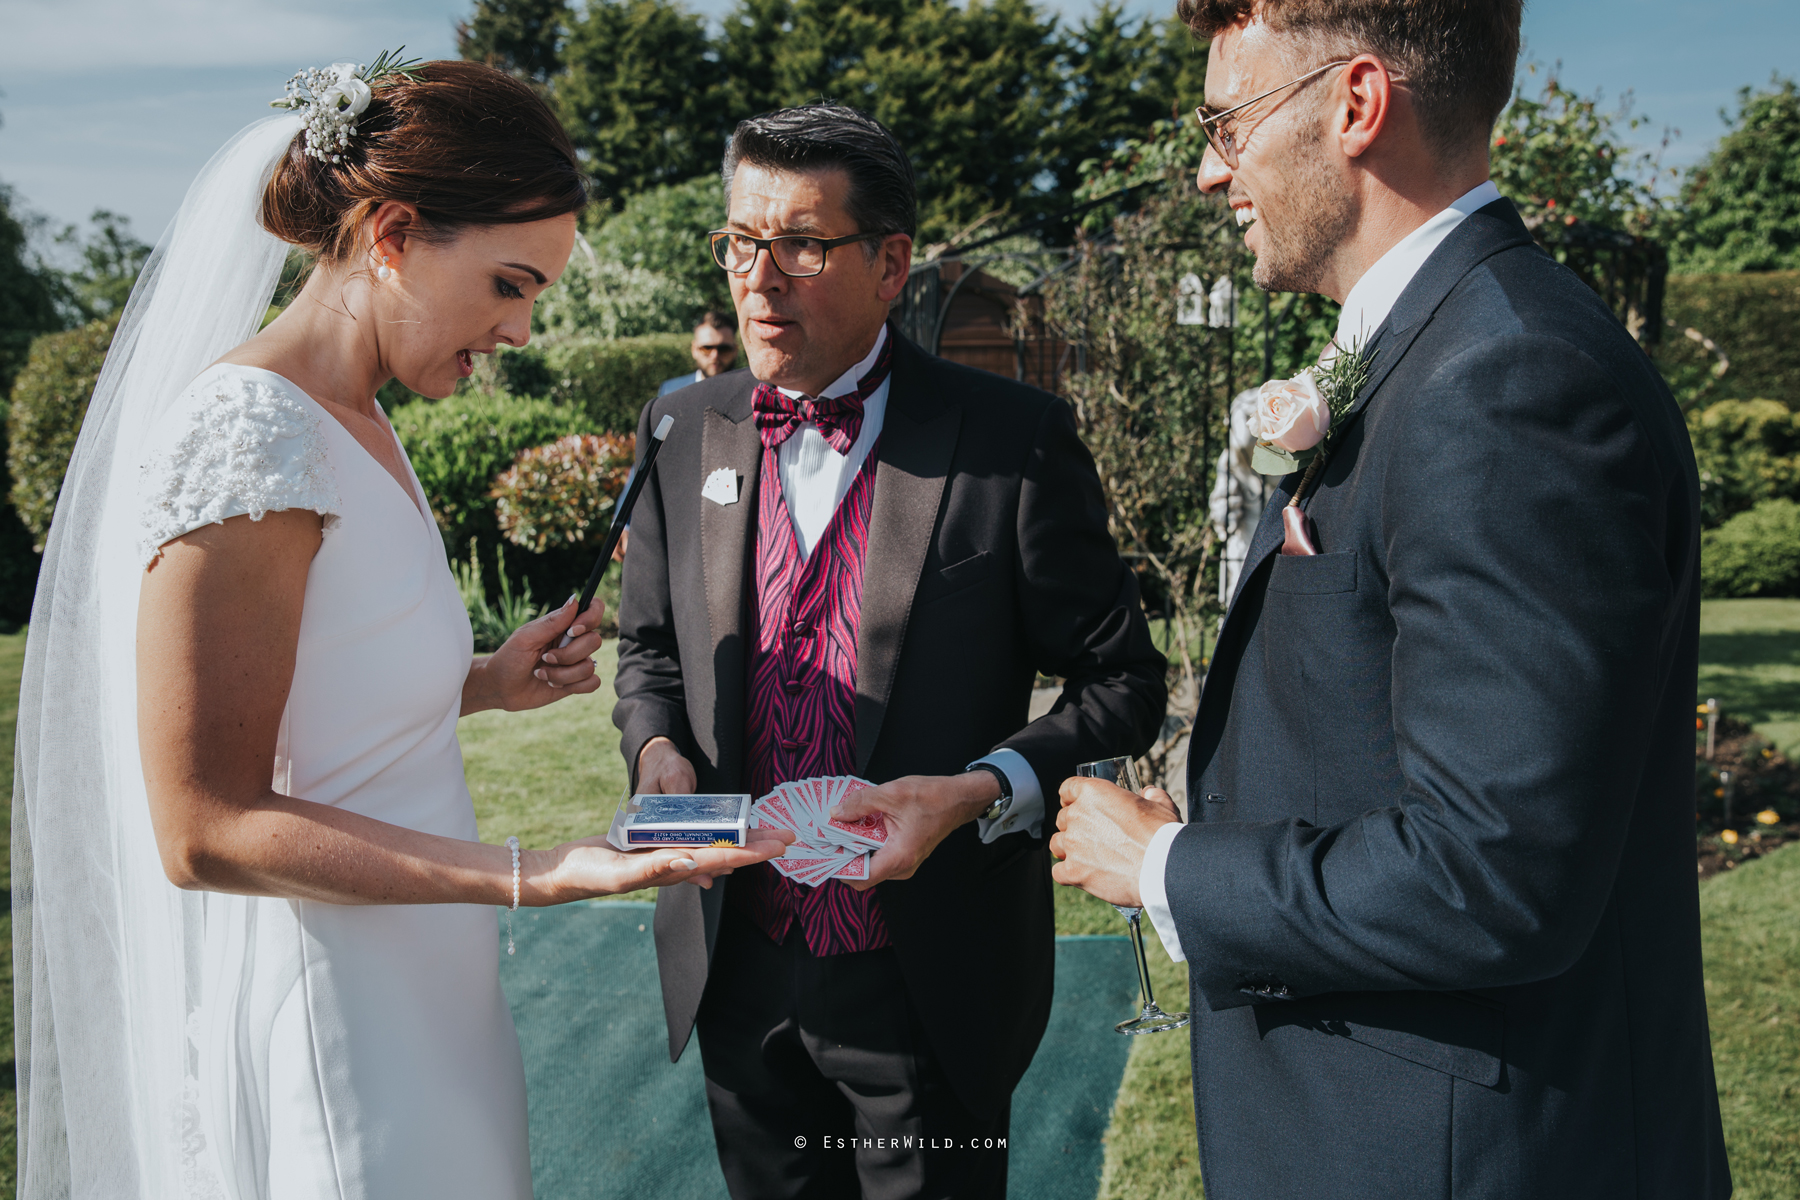 Wootton_Wedding_Copyright_Esther_Wild_Photographer_IMG_2055.jpg